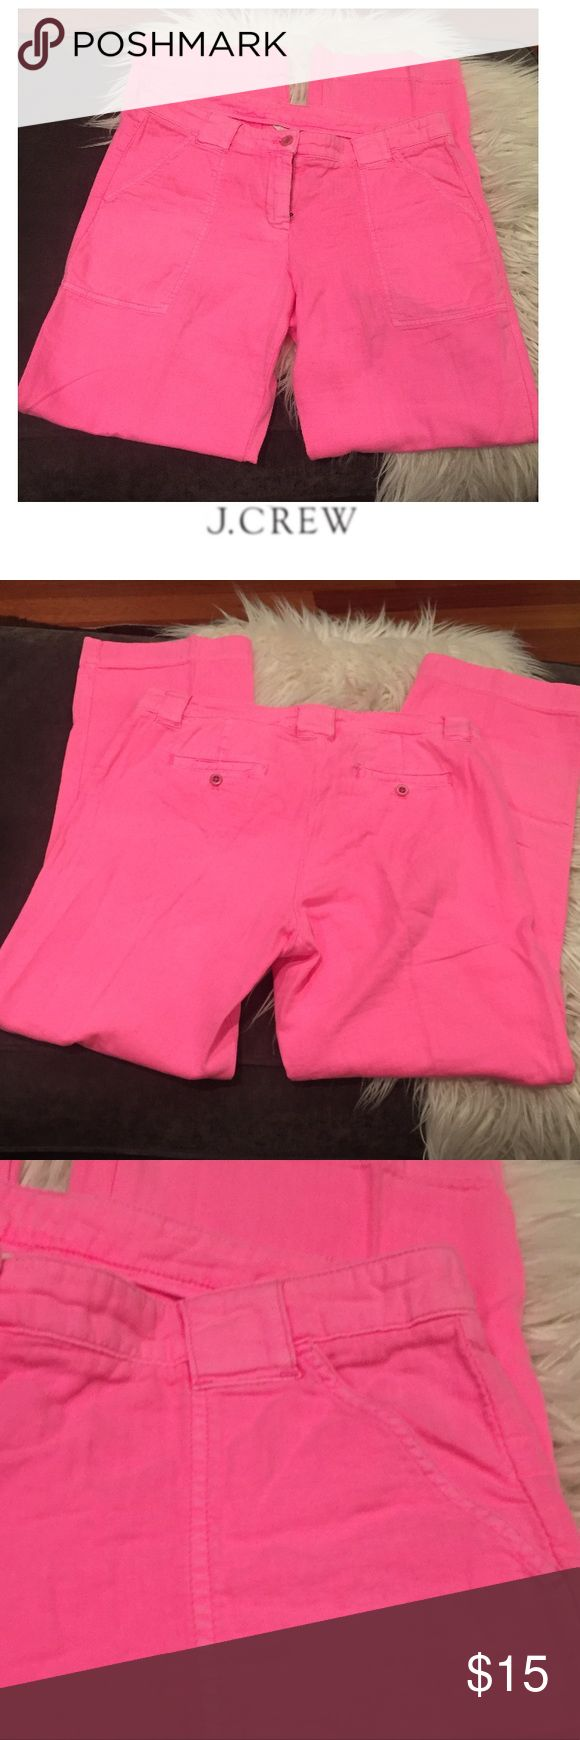 J. Crew City Fit Neon Pink Cargo Style Pants J. Crew City Fit Neon Pink Cargo Style Pants. 10 inch rise, high rise. 32 inch inseam. Gently worn. Great condition. Front pocket is a Cargo style pocket. Feel free to make an offer or bundle & save! J. Crew Pants